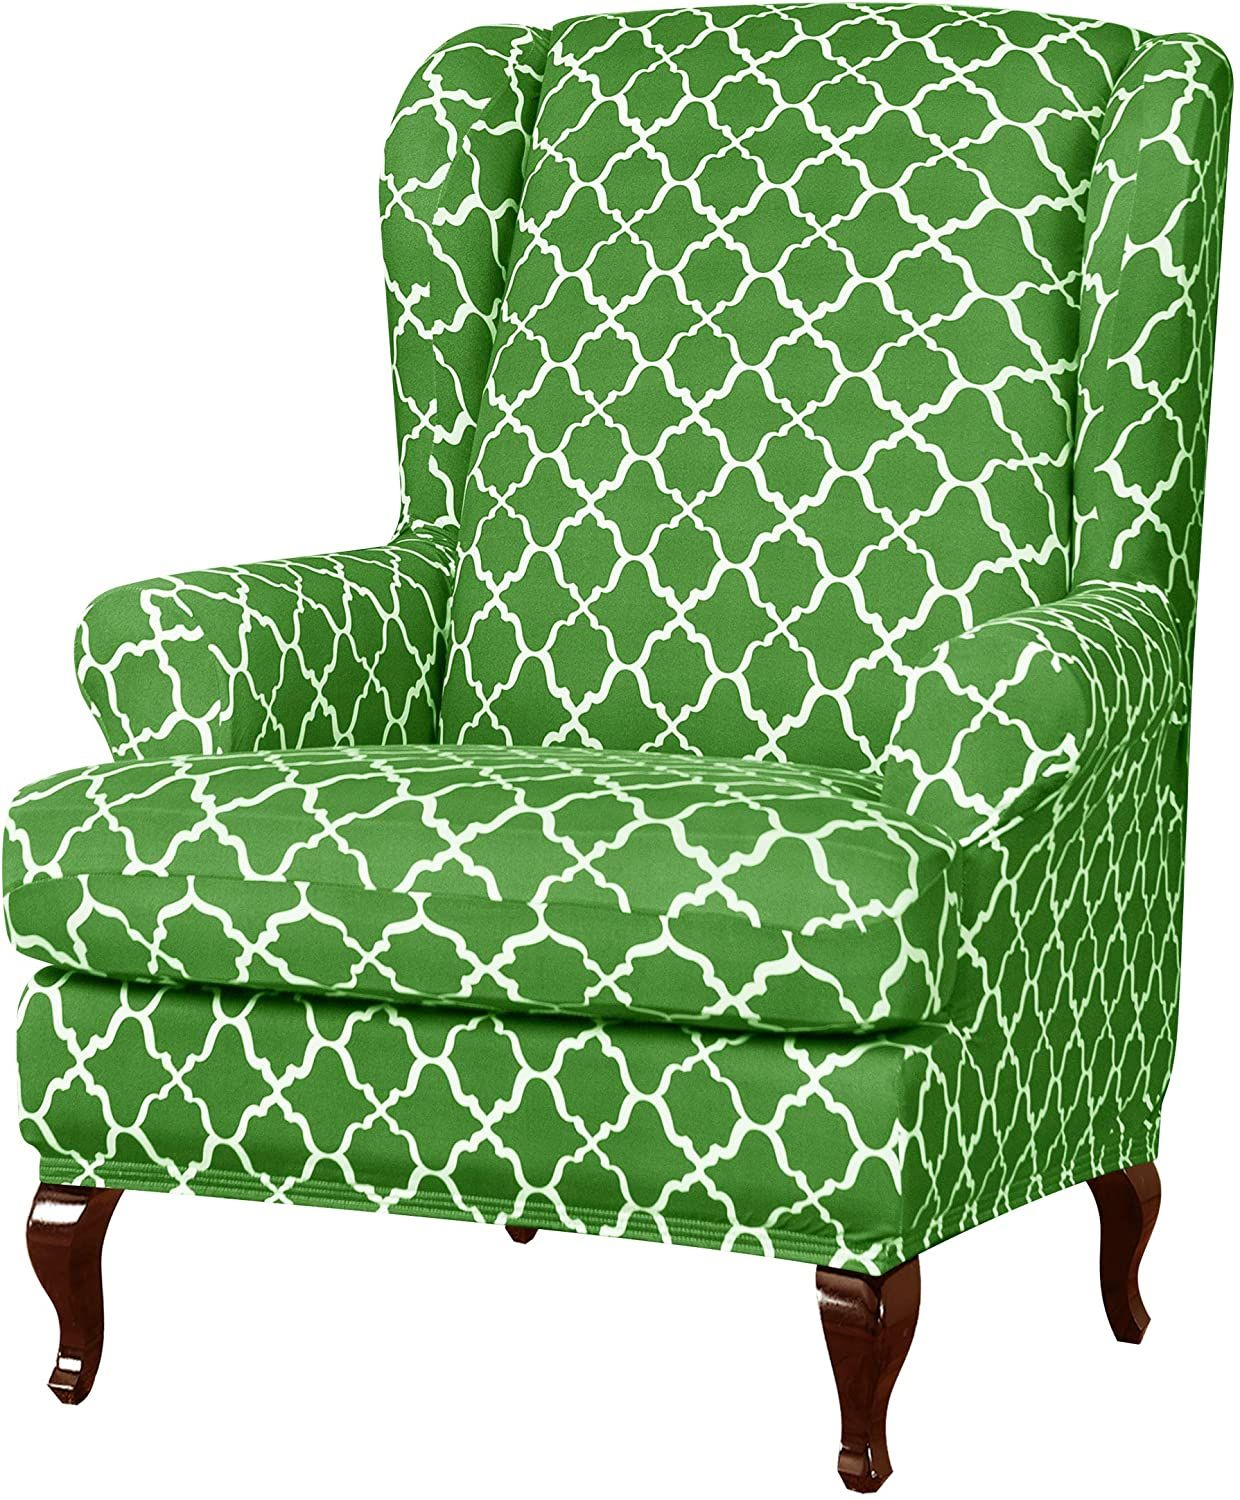 subrtex Wingback Chair Slipcover Covers for